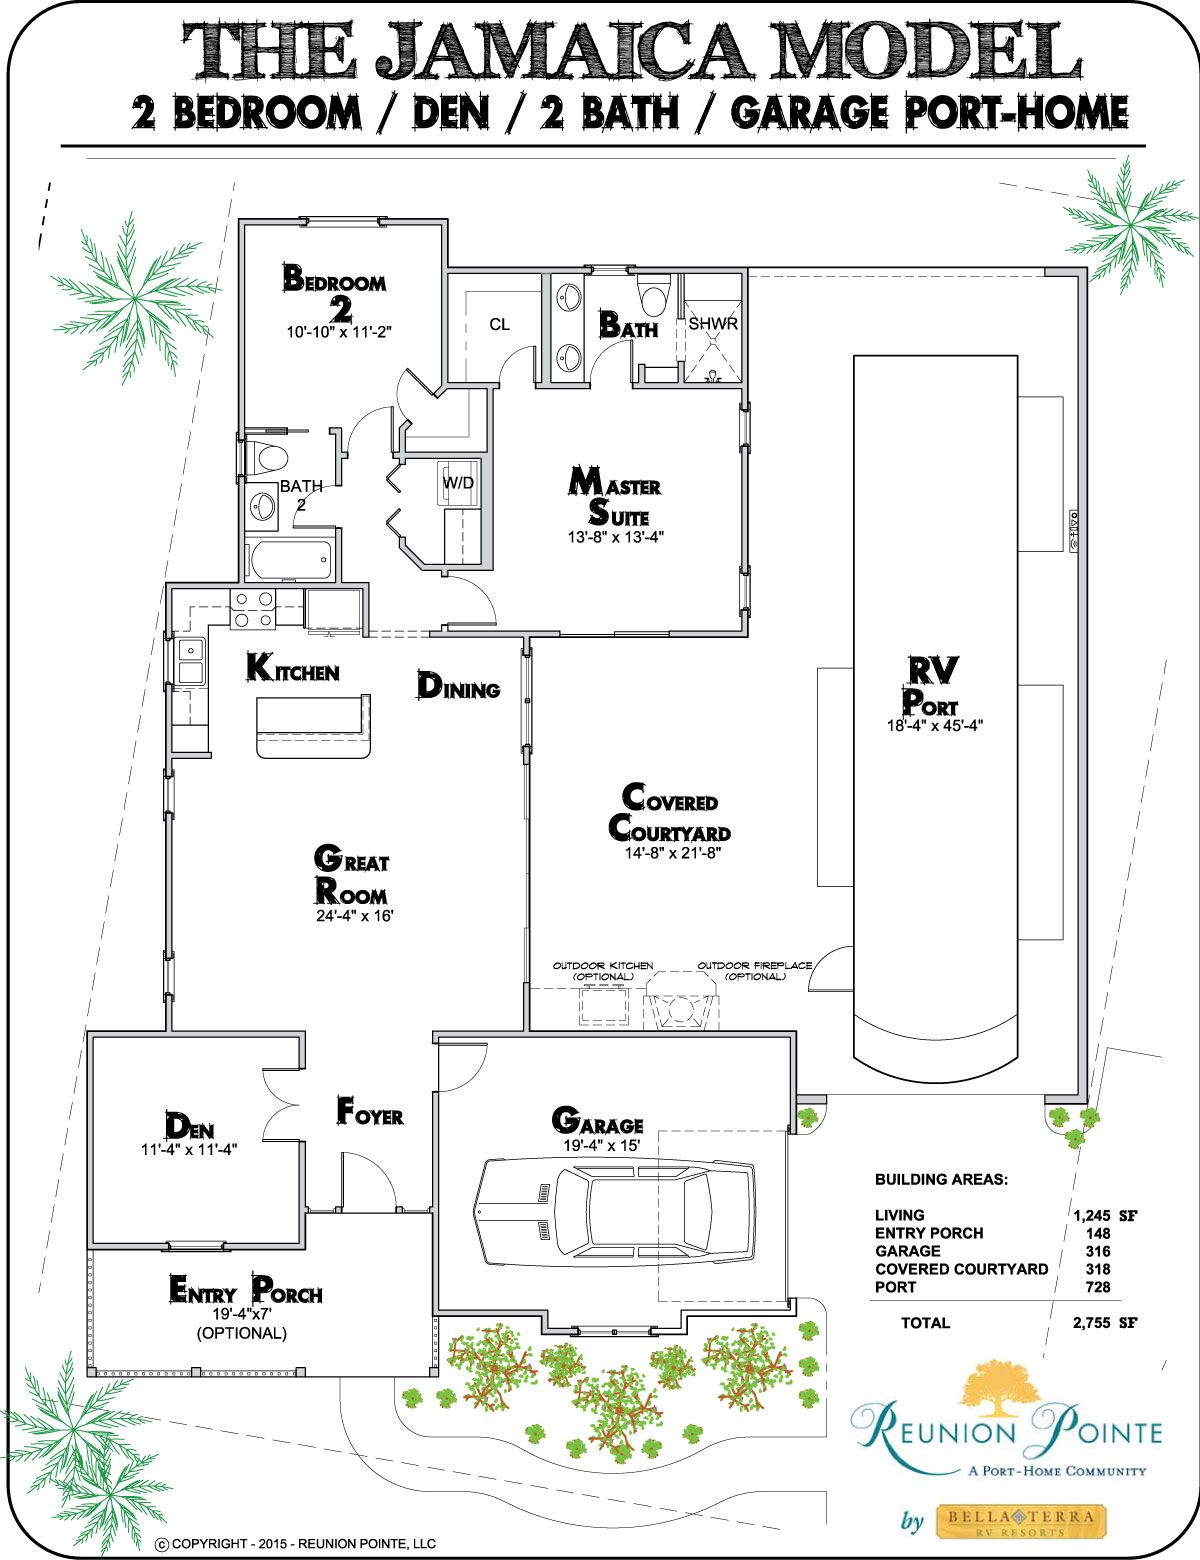 Reunion Pointe Features Four Rver Designed Floor Plans That Seamlessly Combine The Freedom Of Motorcoac Barndominium Floor Plans Barndominium Plans Floor Plans